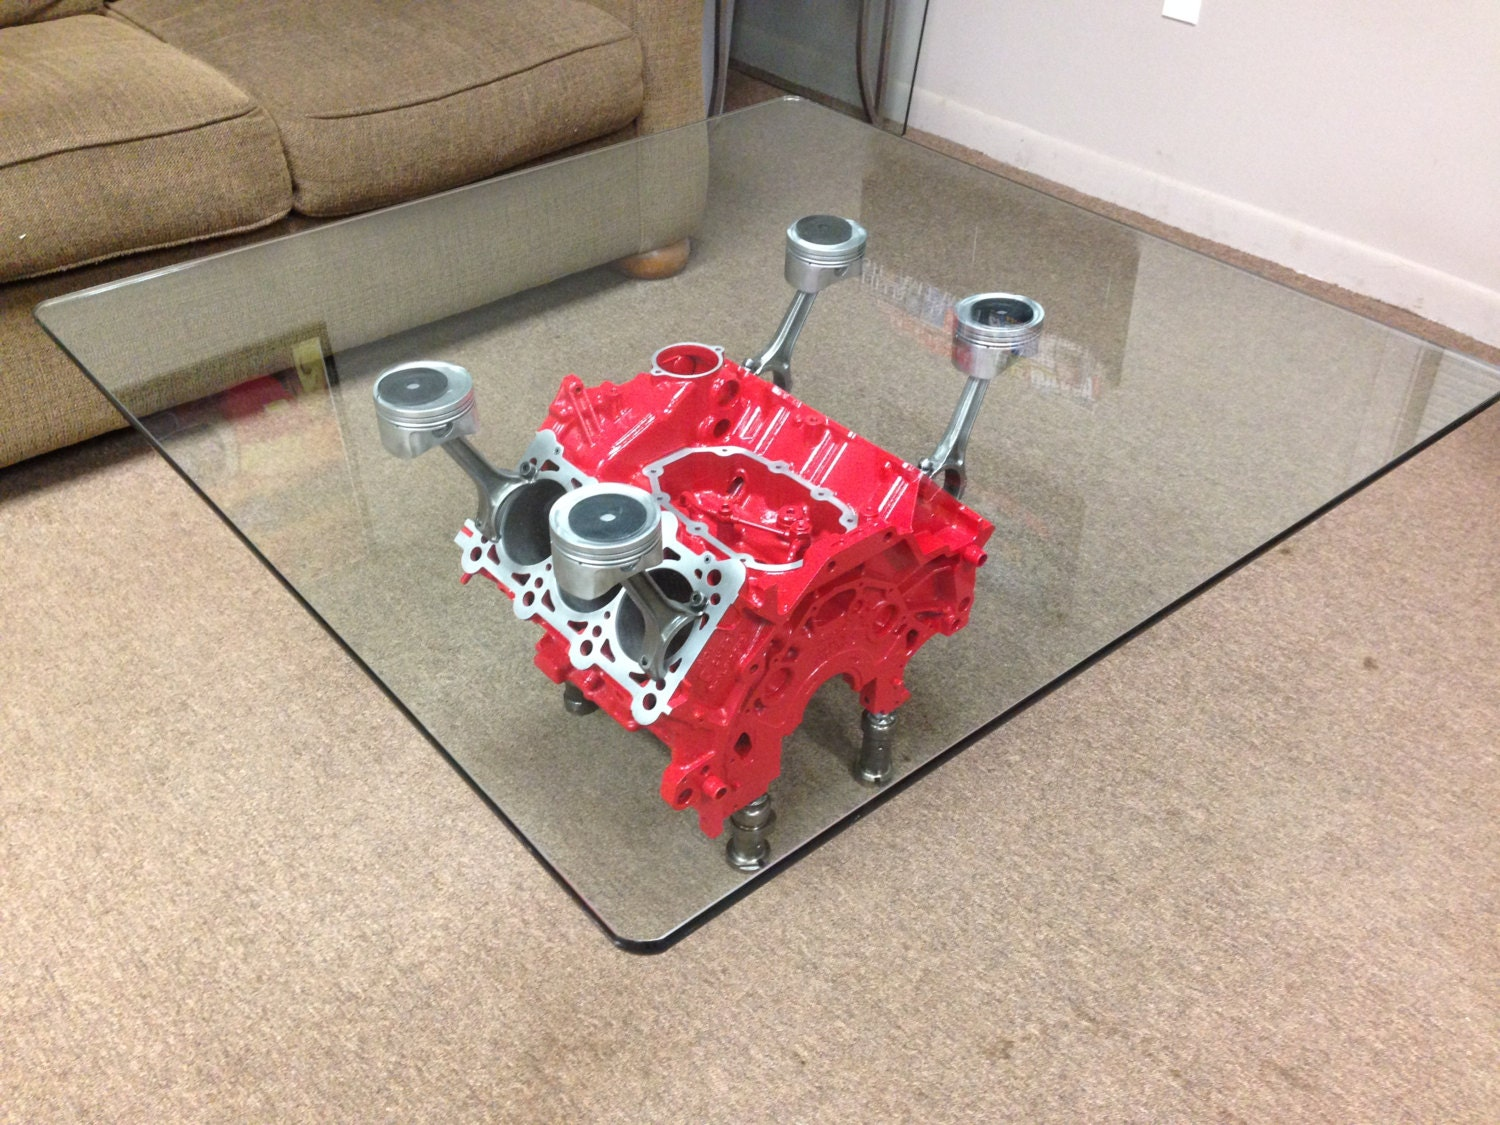 Engine Block Coffee Table By Lumppnsons On Etsy